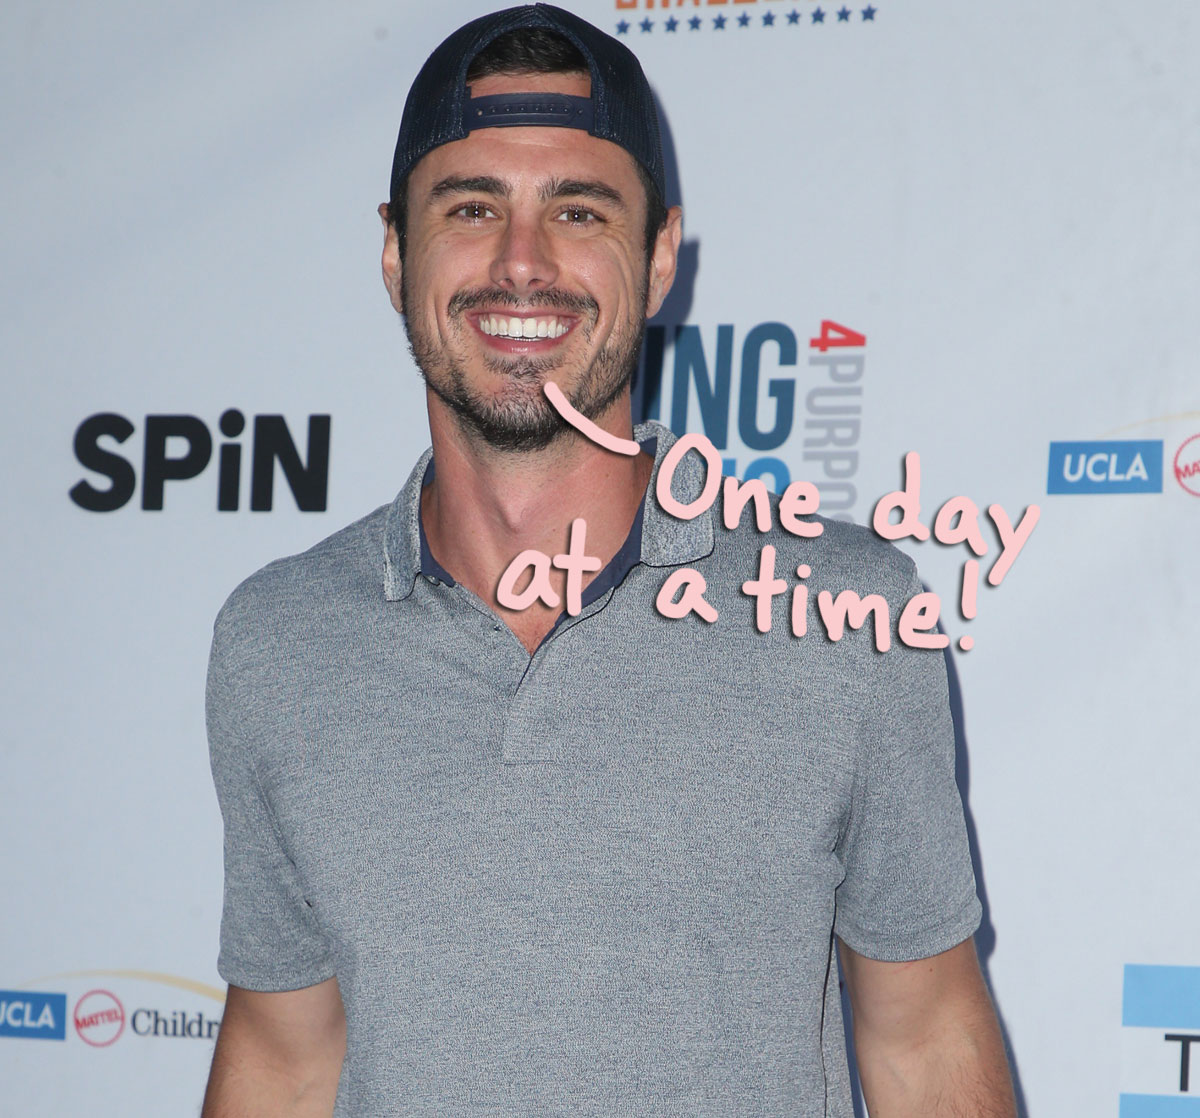 The Bachelor's Ben Higgins Reveals He Stole Pills From His Grandfather Amid Four-Year Struggle With Opioid Abuse